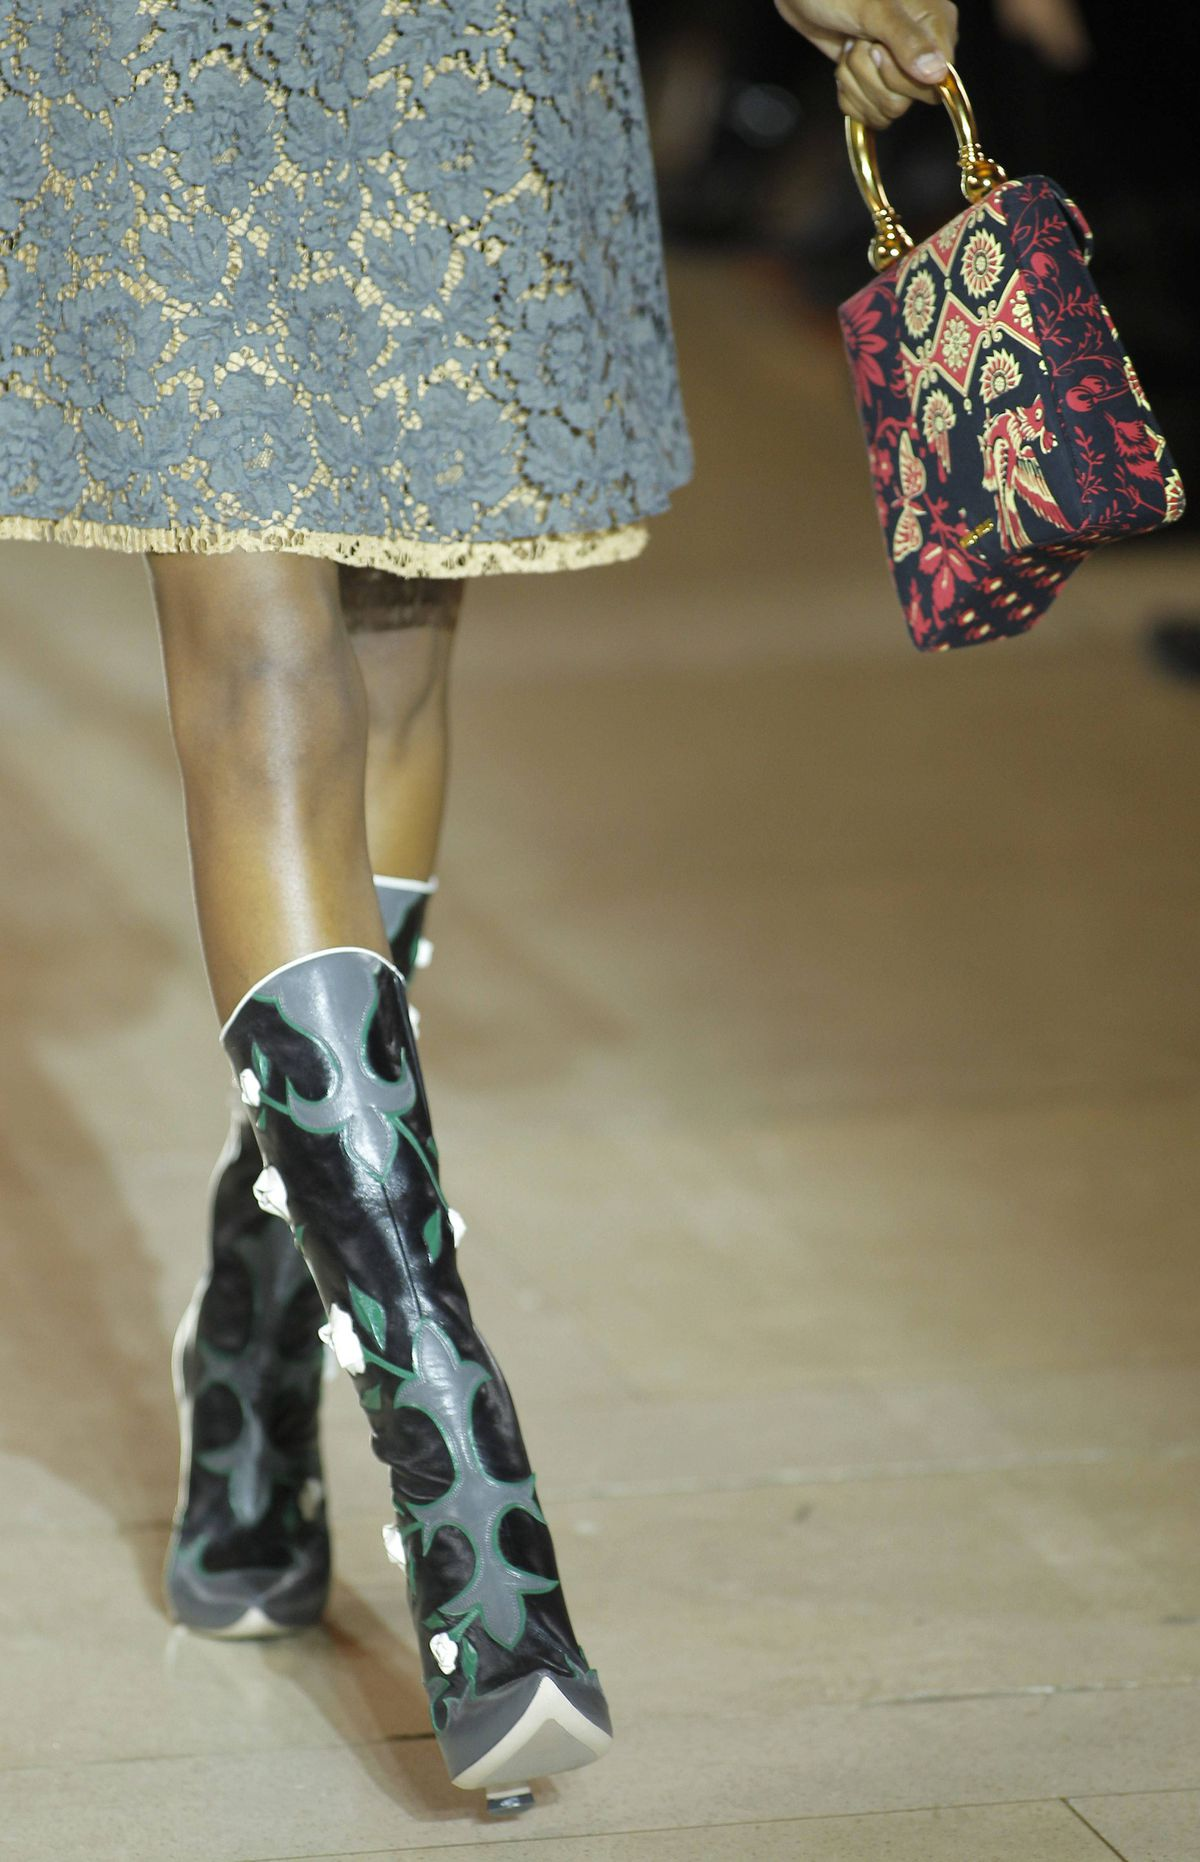 Miu Miu can always be counted on for kooky footwear, coveted by the fashion-obsessed. Witness these loosely interpreted cowboy boots, prime material for street-style blogs.